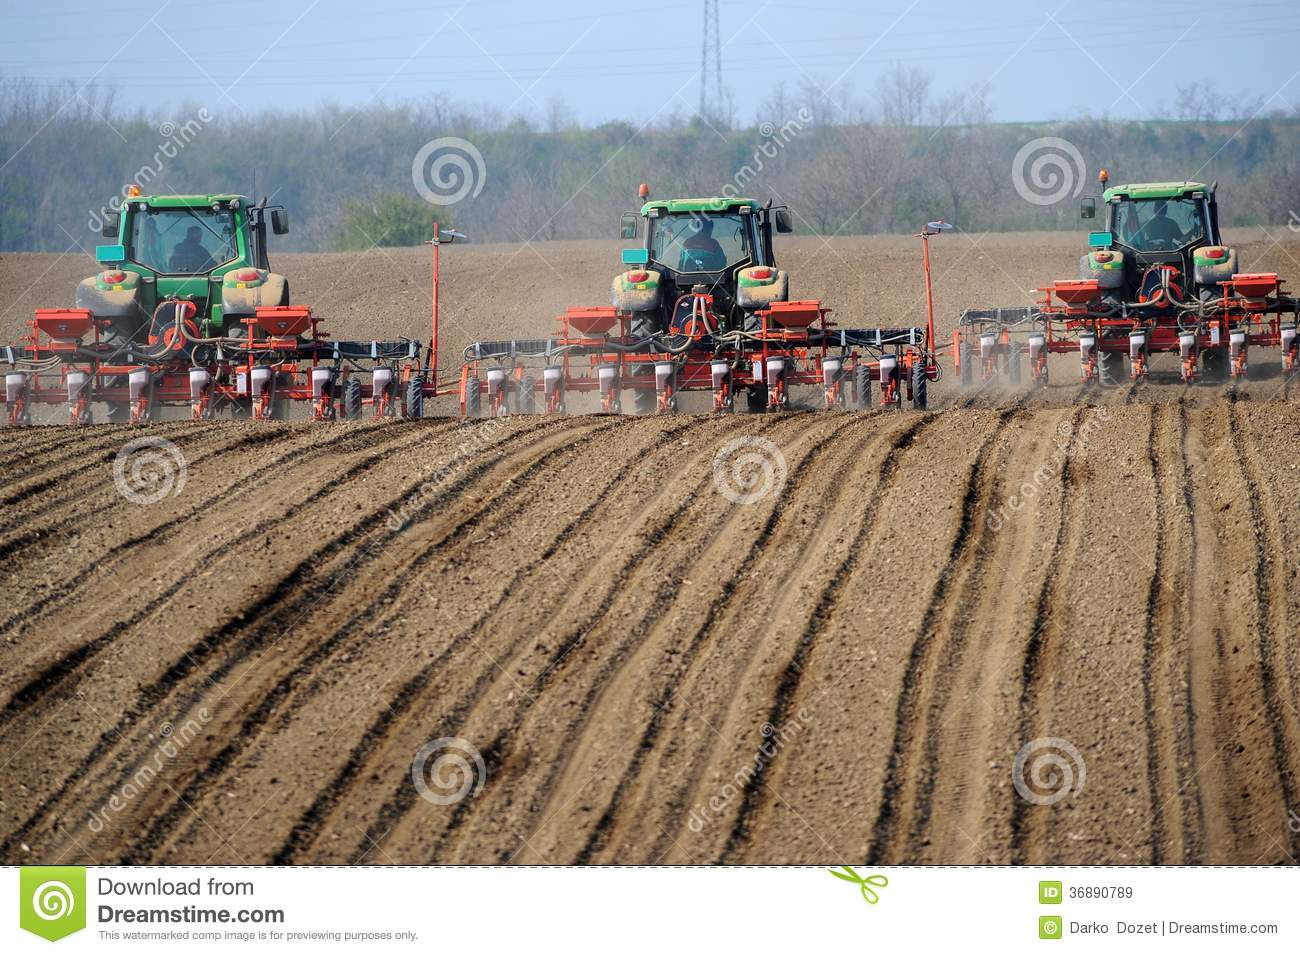 Tractor In Field Planting : Farm tractors planting field royalty free stock images